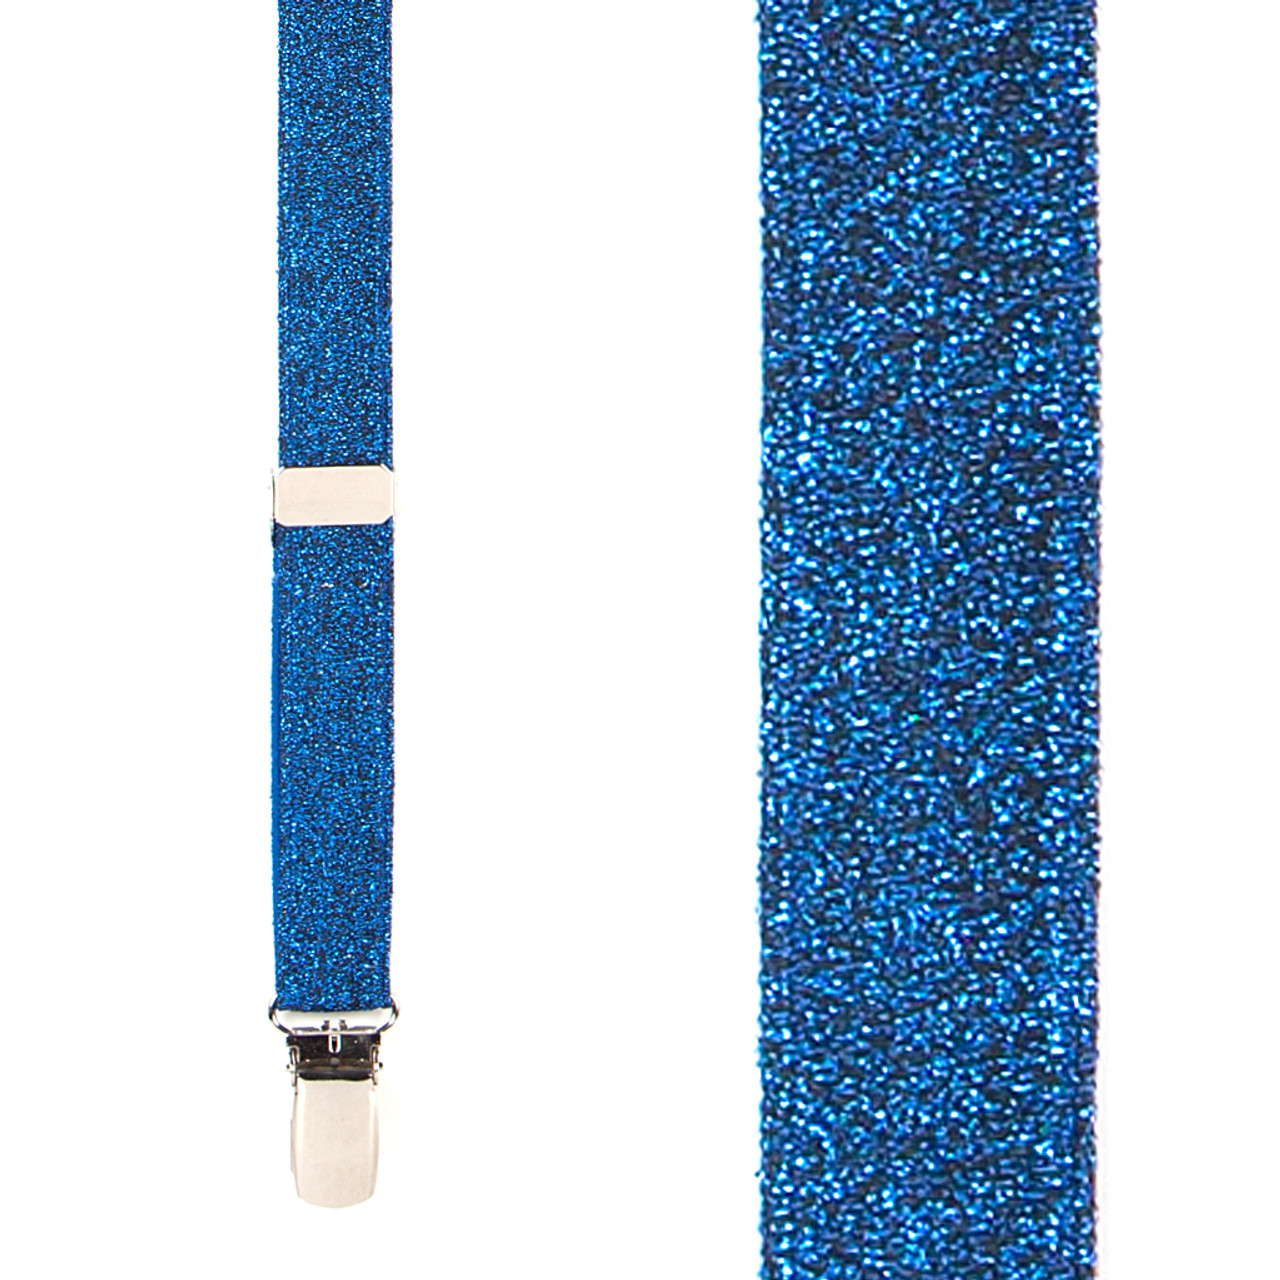 805332b0e9a Royal Blue Glitter Suspenders - 1 Inch Wide Clip